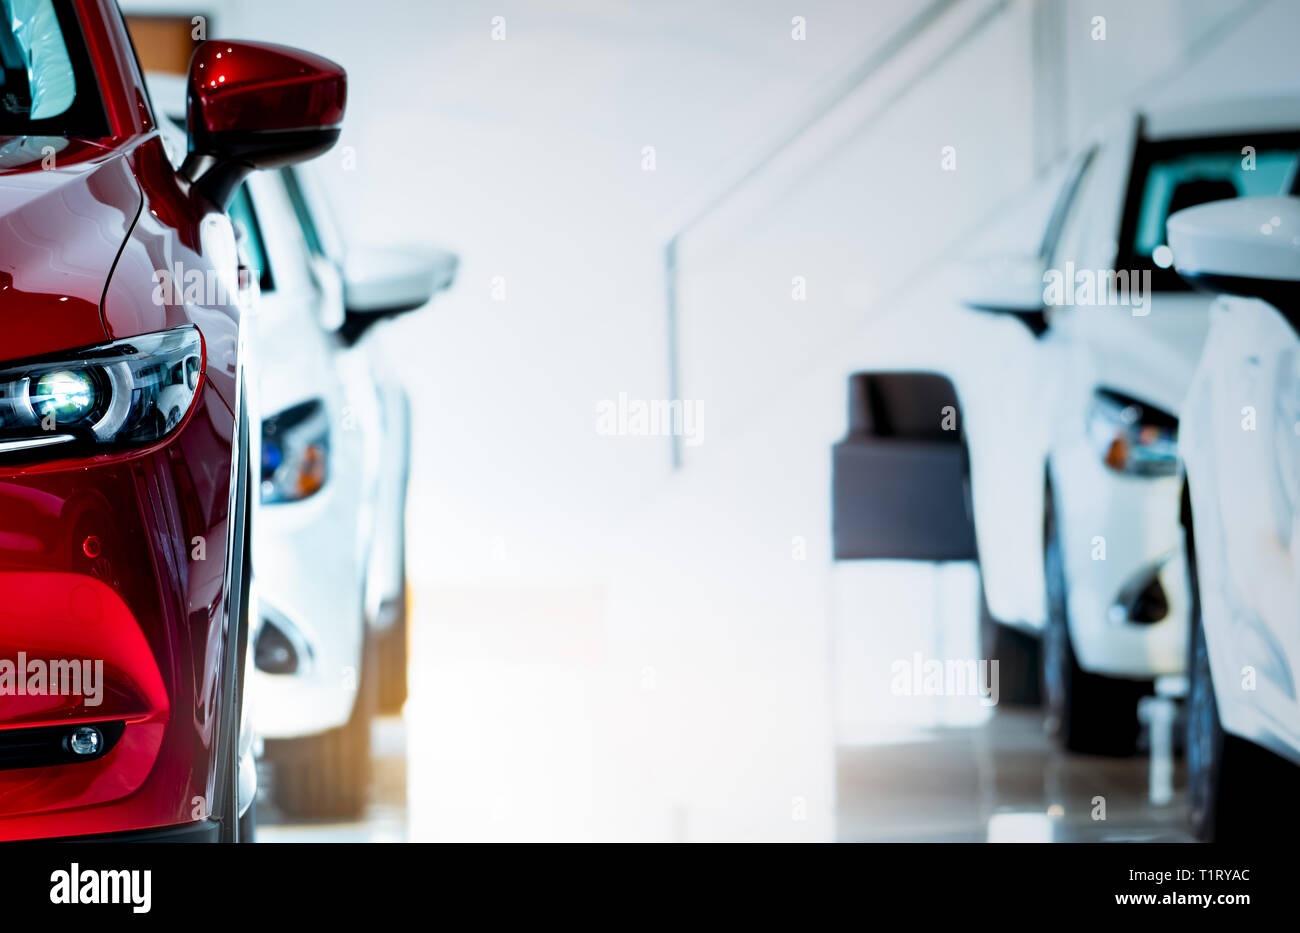 Front View Of Red Car New Luxury Compact Car Parked In Modern Showroom For Sale Car Dealership Office Automobile Retail Shop Electric Car Stock Photo Alamy